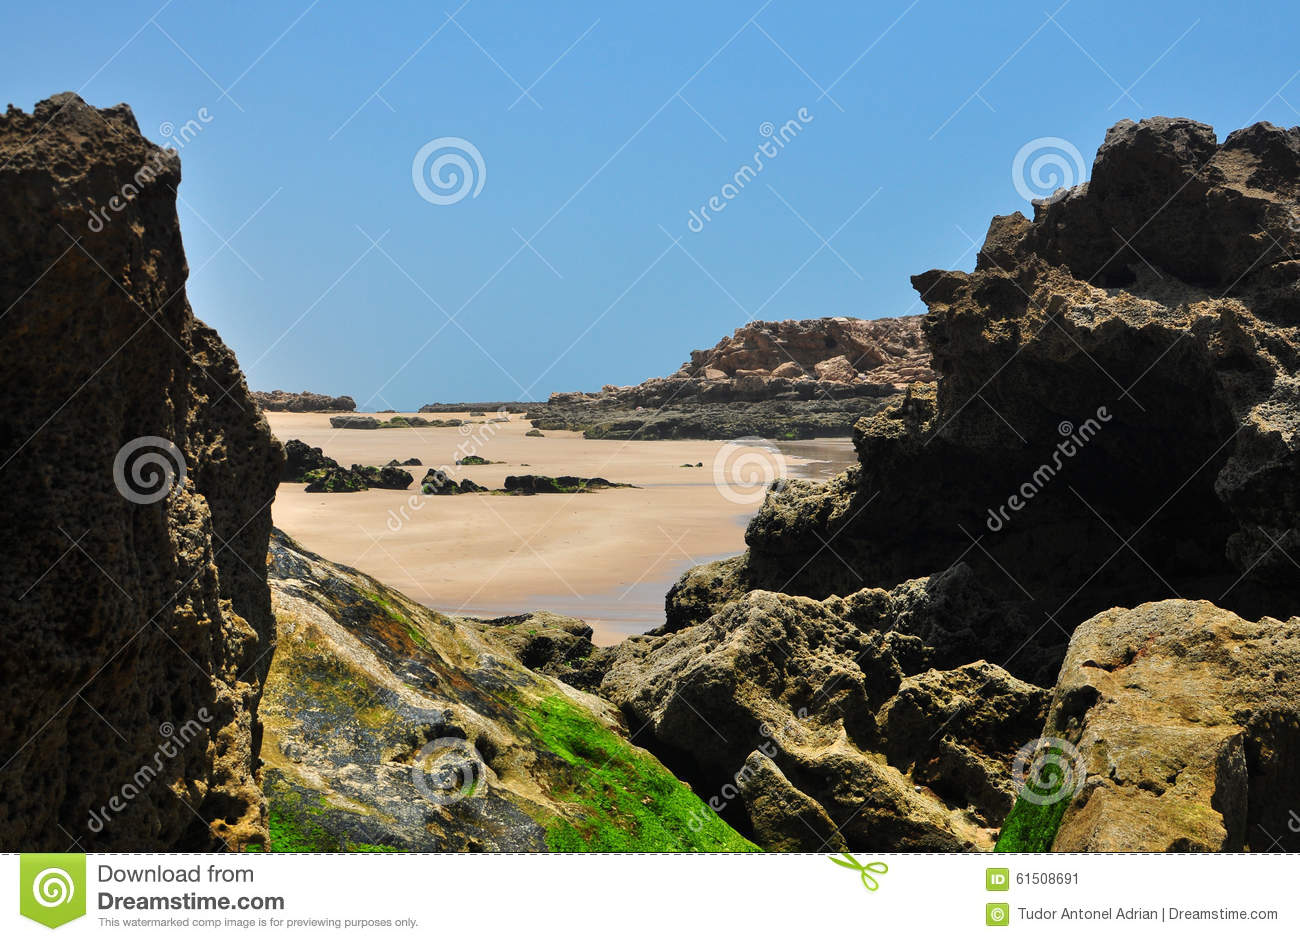 Taghazout beach rocks stock photo image 61508691 for Landscaping rocks east bay